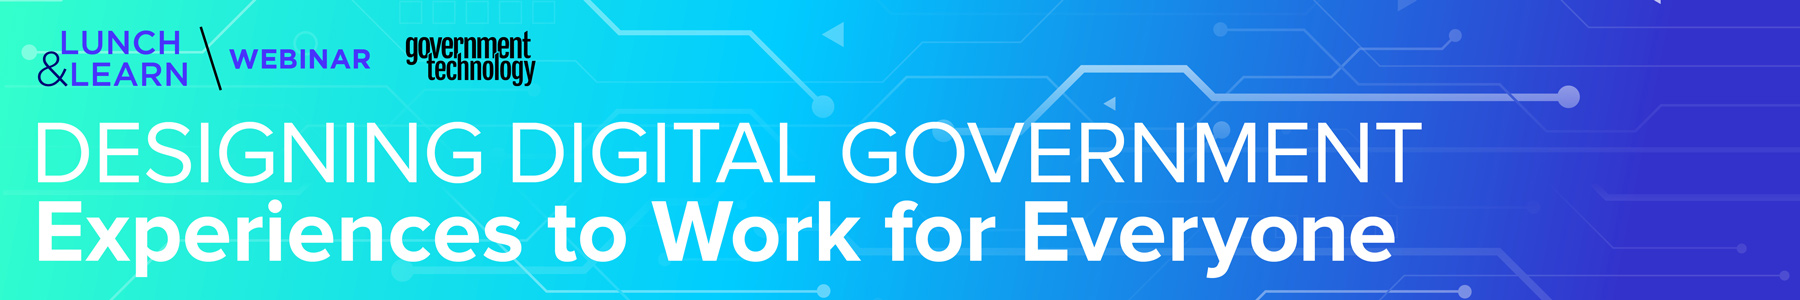 Designing Digital Government Experiences to Work for Everyone